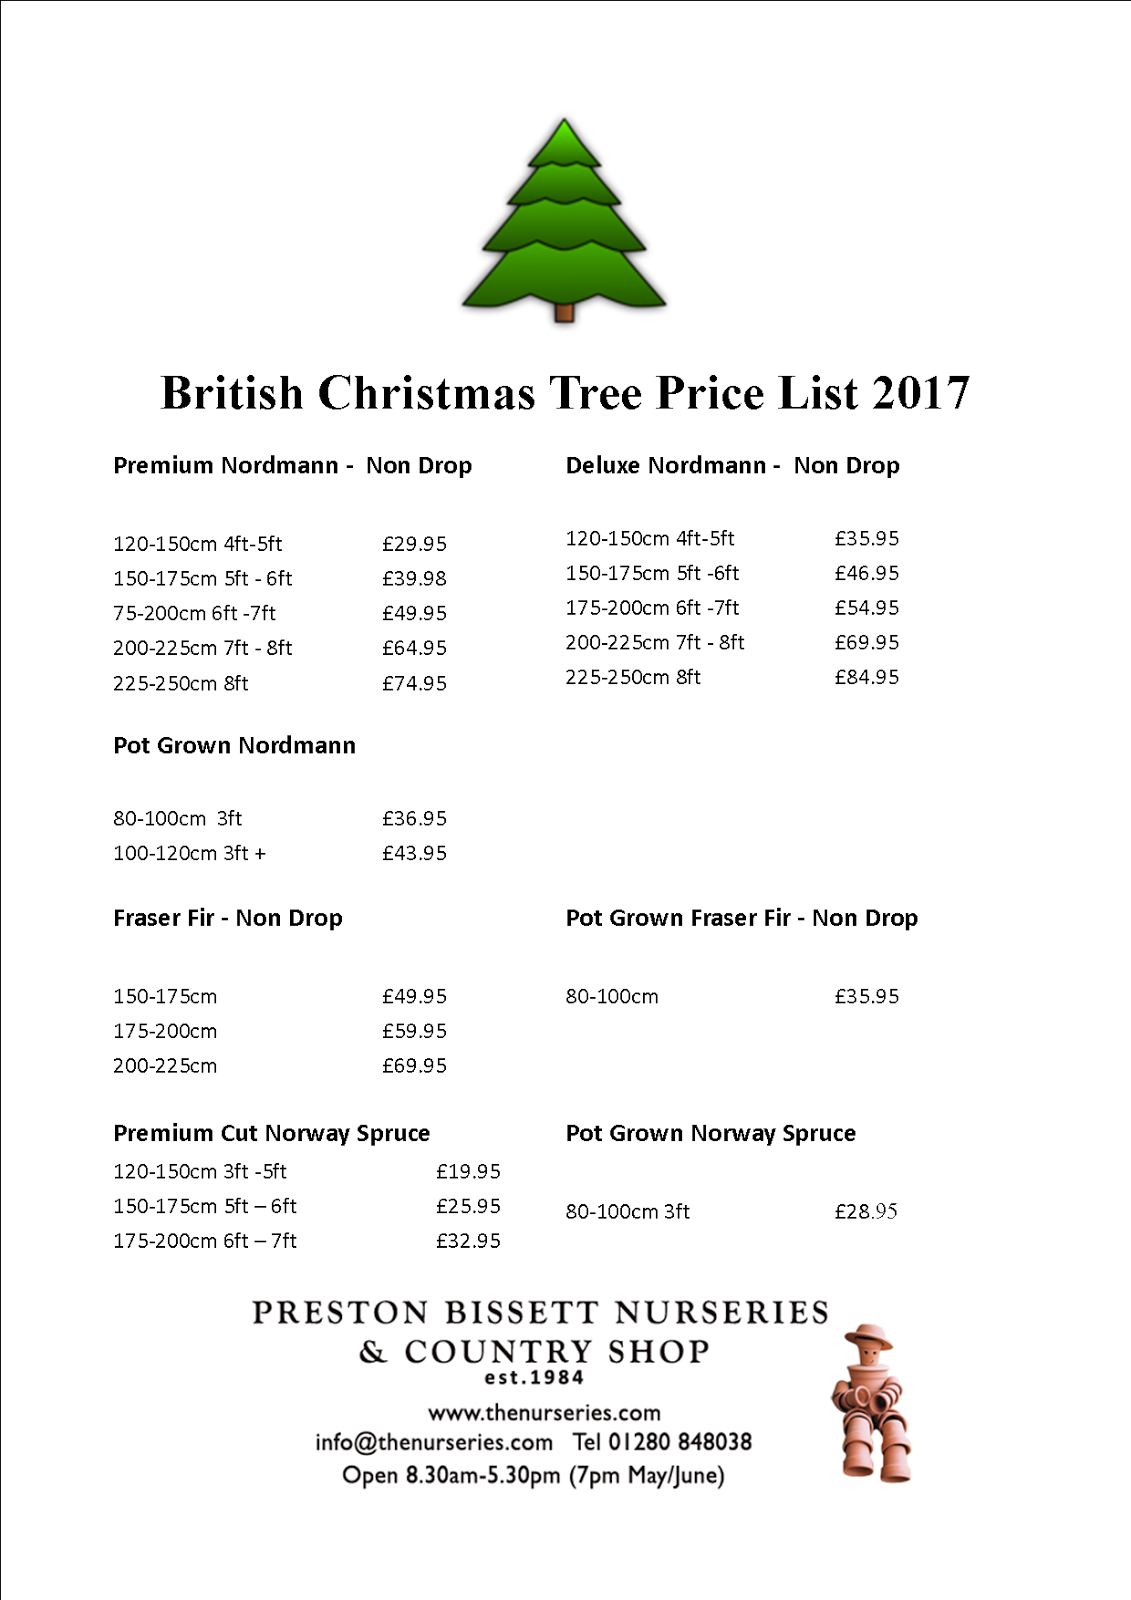 Preston Bissett Nurseries and Country Shop: Christmas Tree Prices